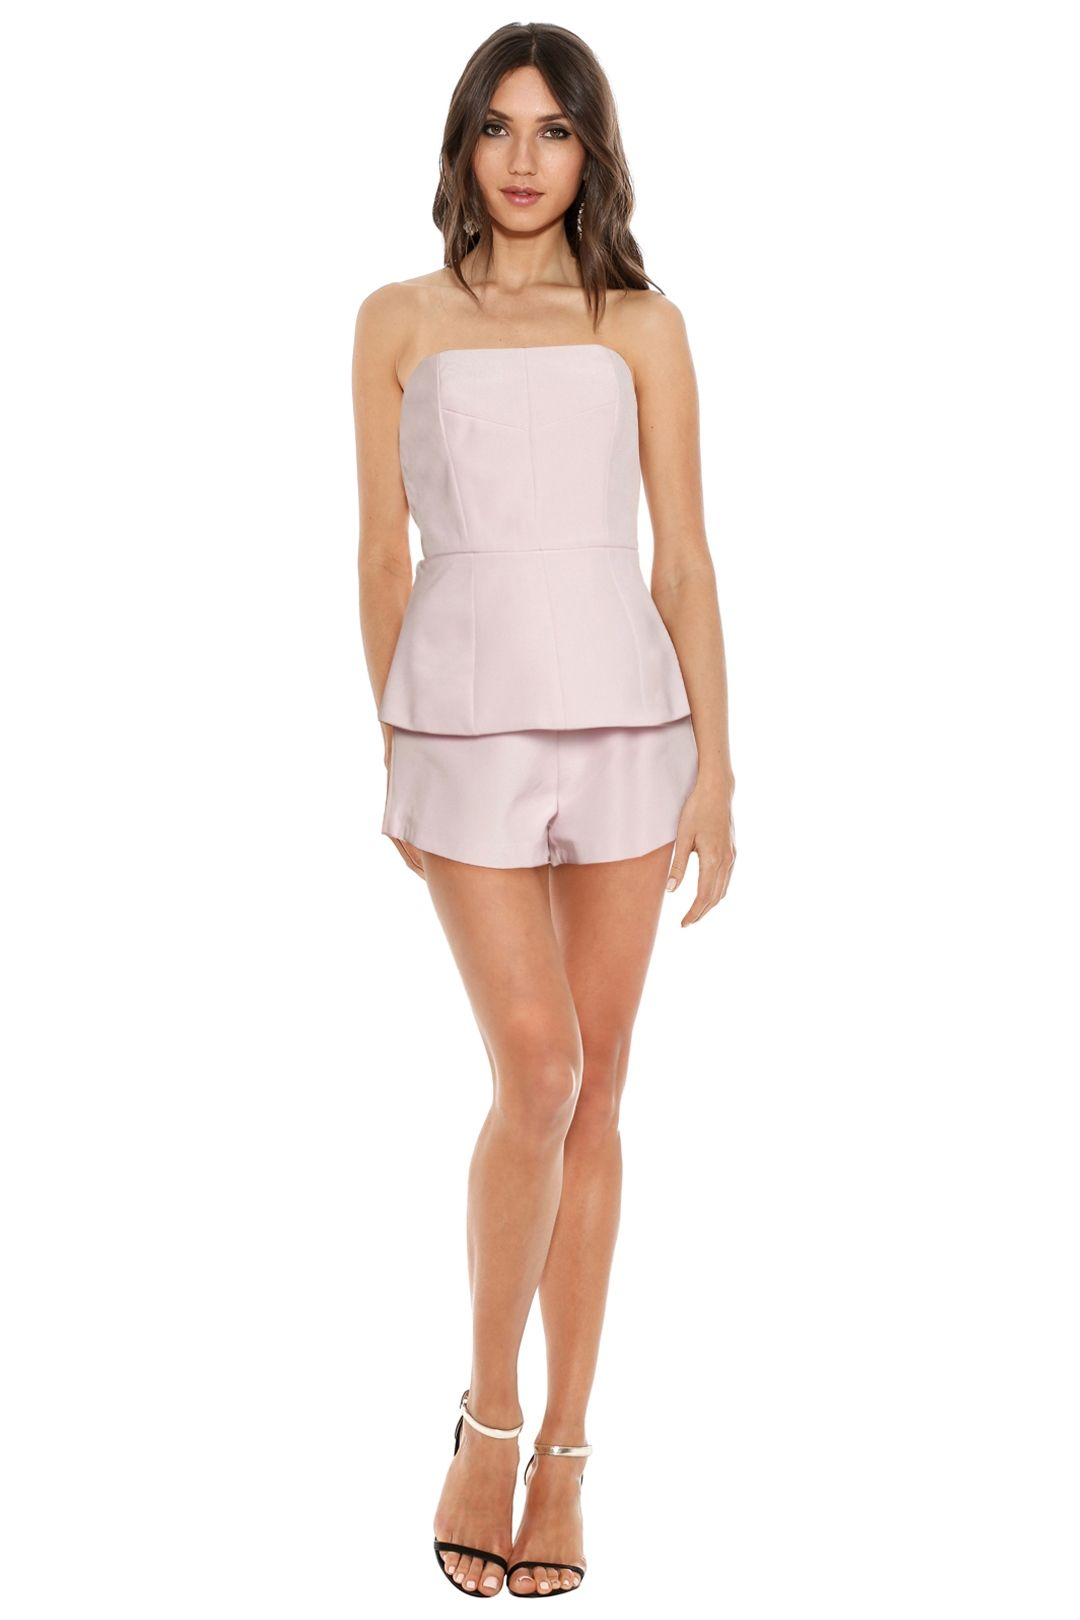 Finders Keepers - Sweet Darling Playsuit - Powder Pink - Front